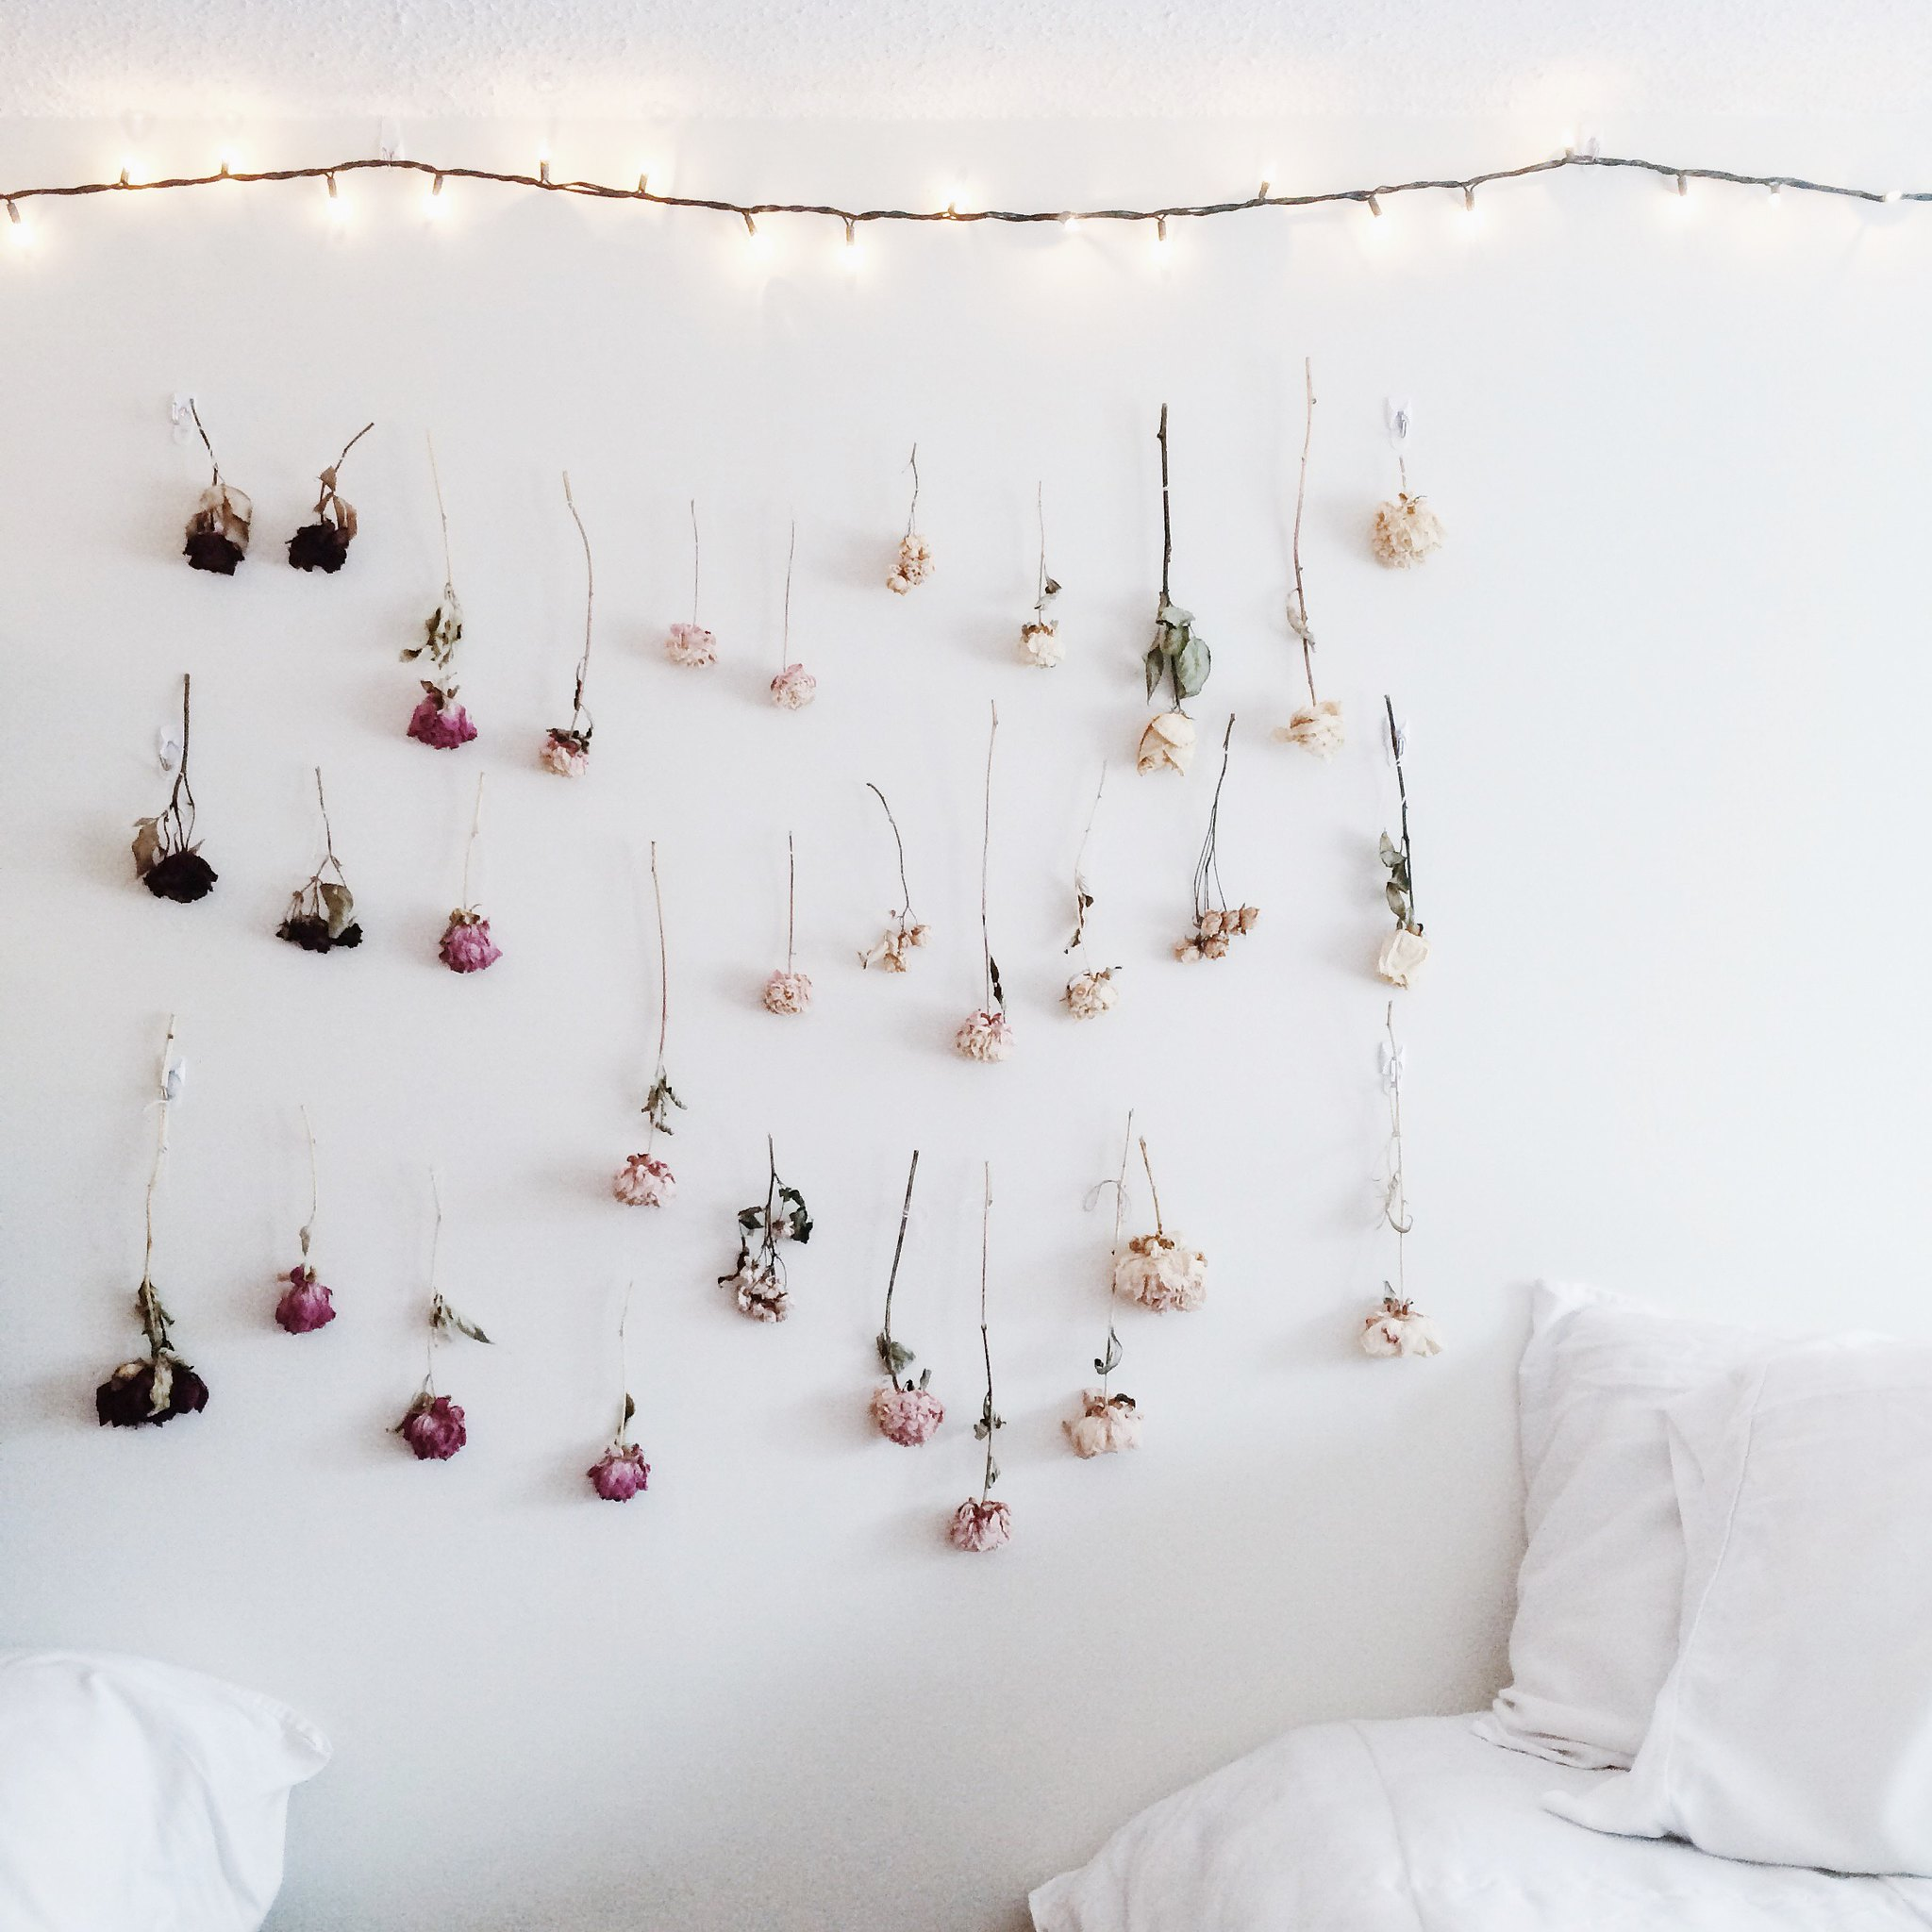 Diy ombre dried flower wall juliette laura - Flower wall designs for a bedroom ...